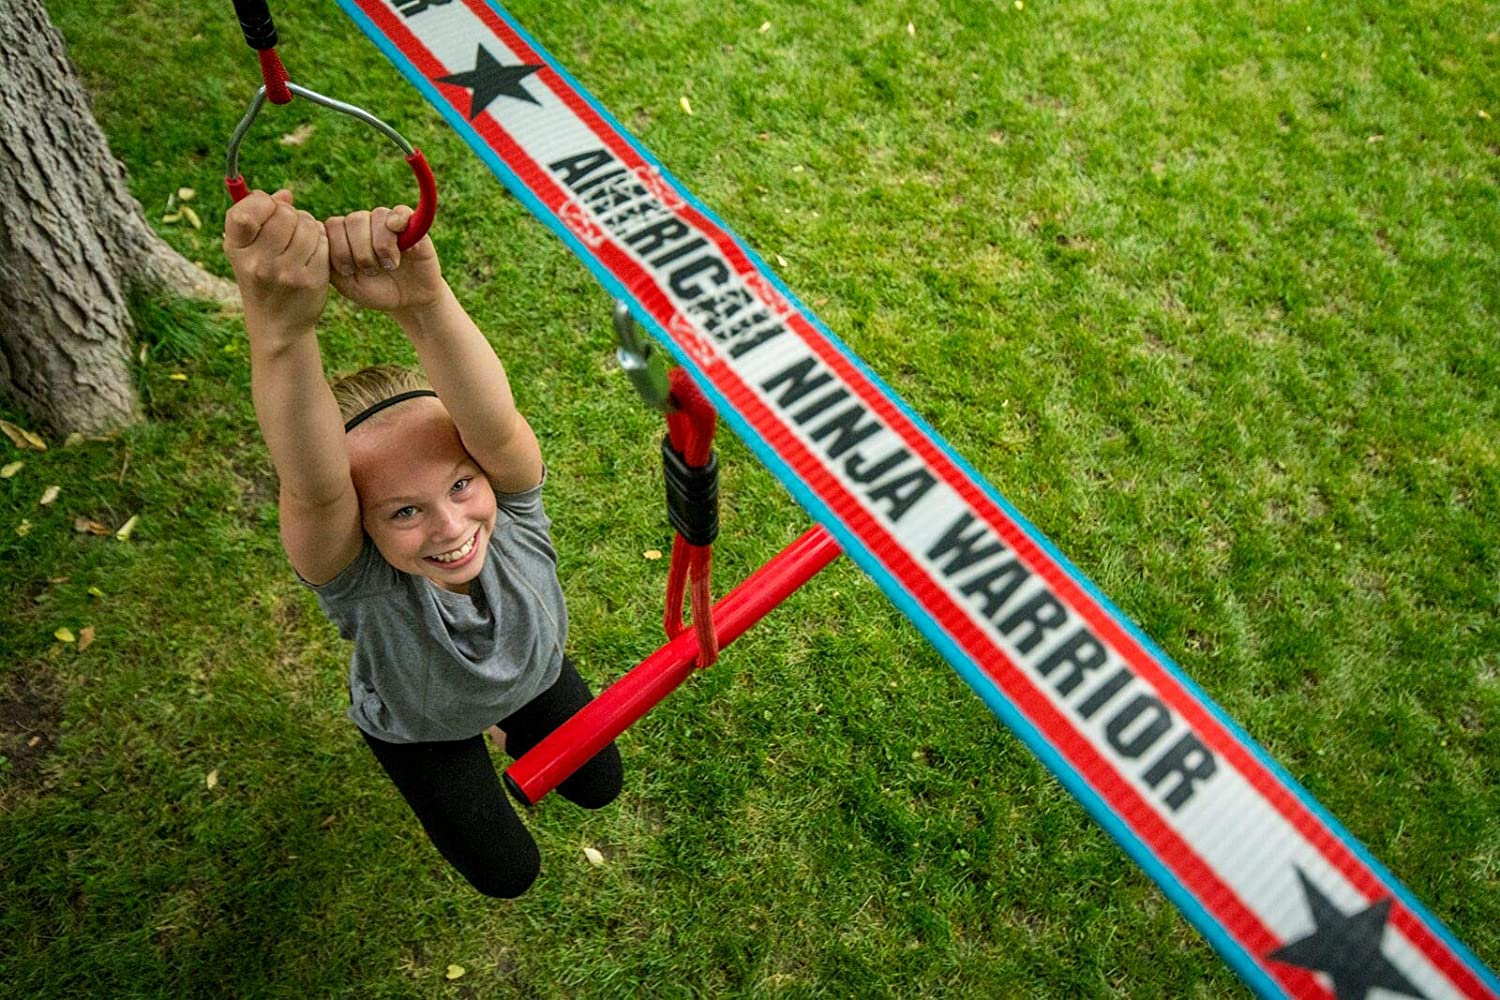 Amazon.com: American Ninja Warrior 40 Deluxe NinjaLine ...